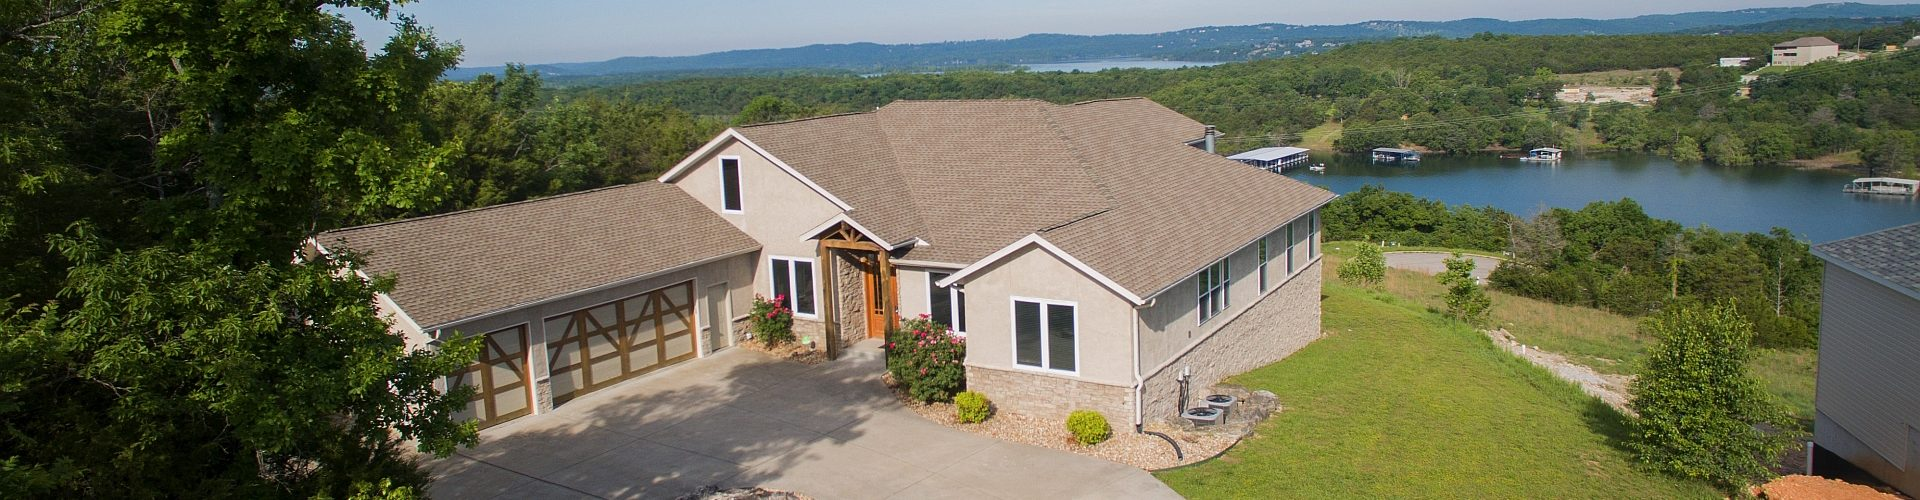 5 Bedroom Condos, Villas, Homes, & Vacation Rentals in Branson, Missouri